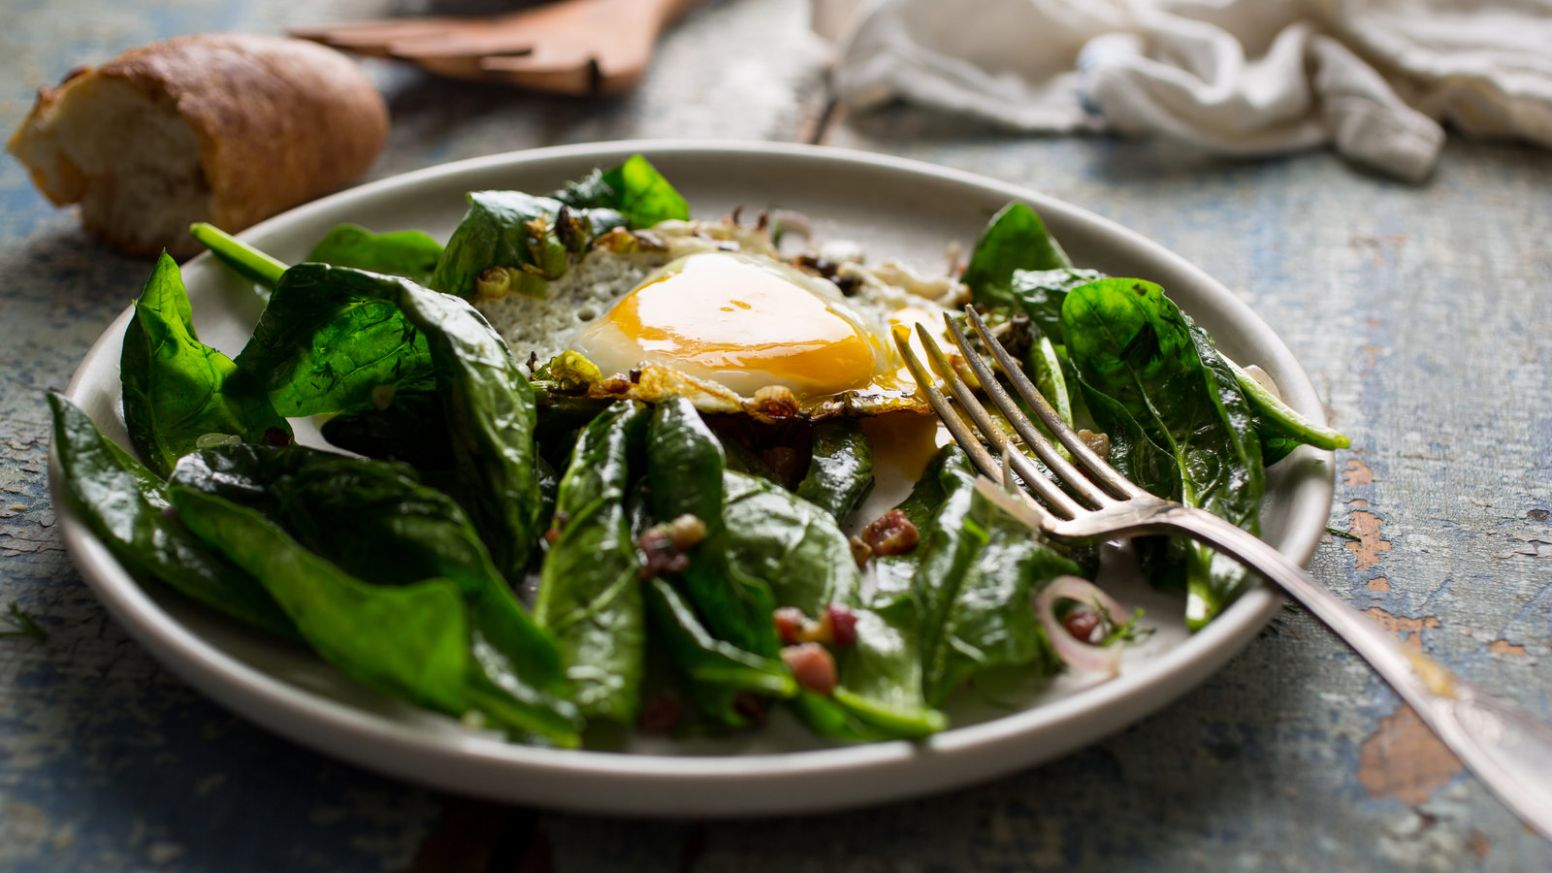 Spinach Salad With Fried Eggs - Salad Recipes Nytimes